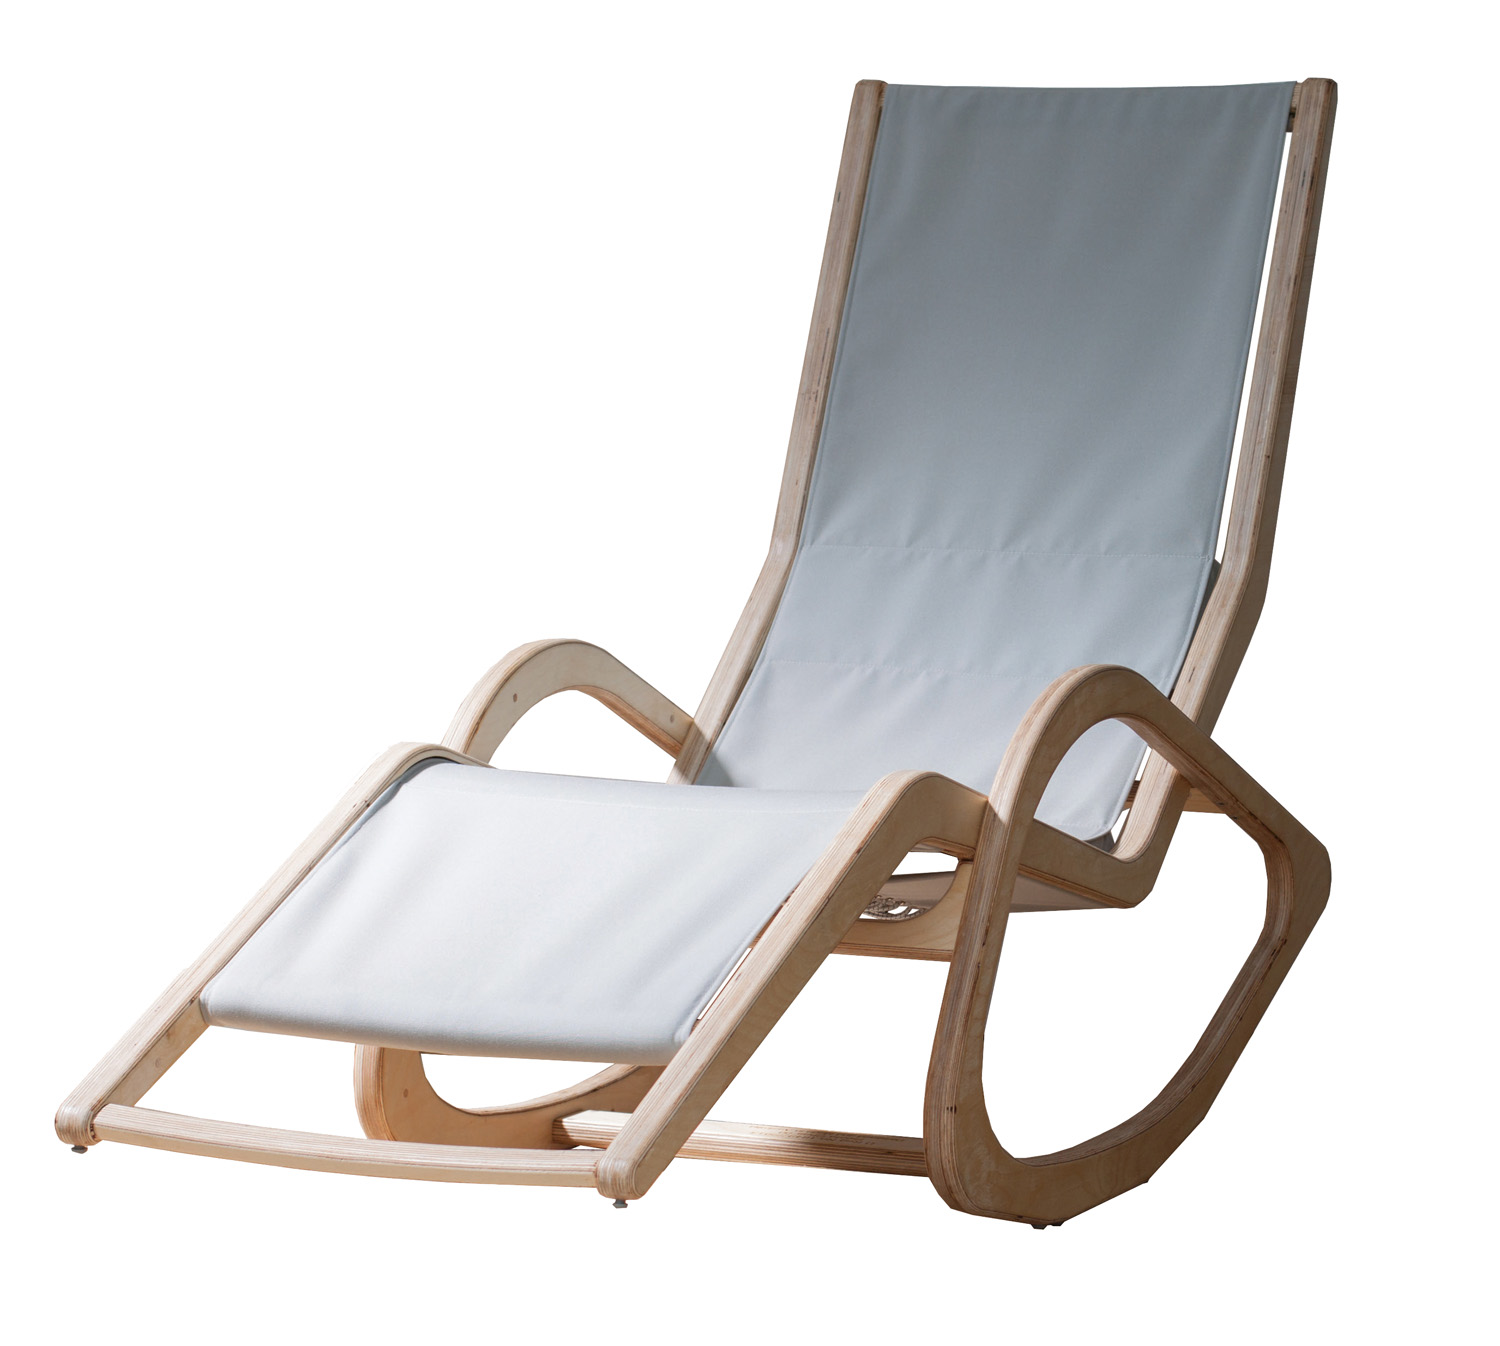 Siesta chair, onada.com.au